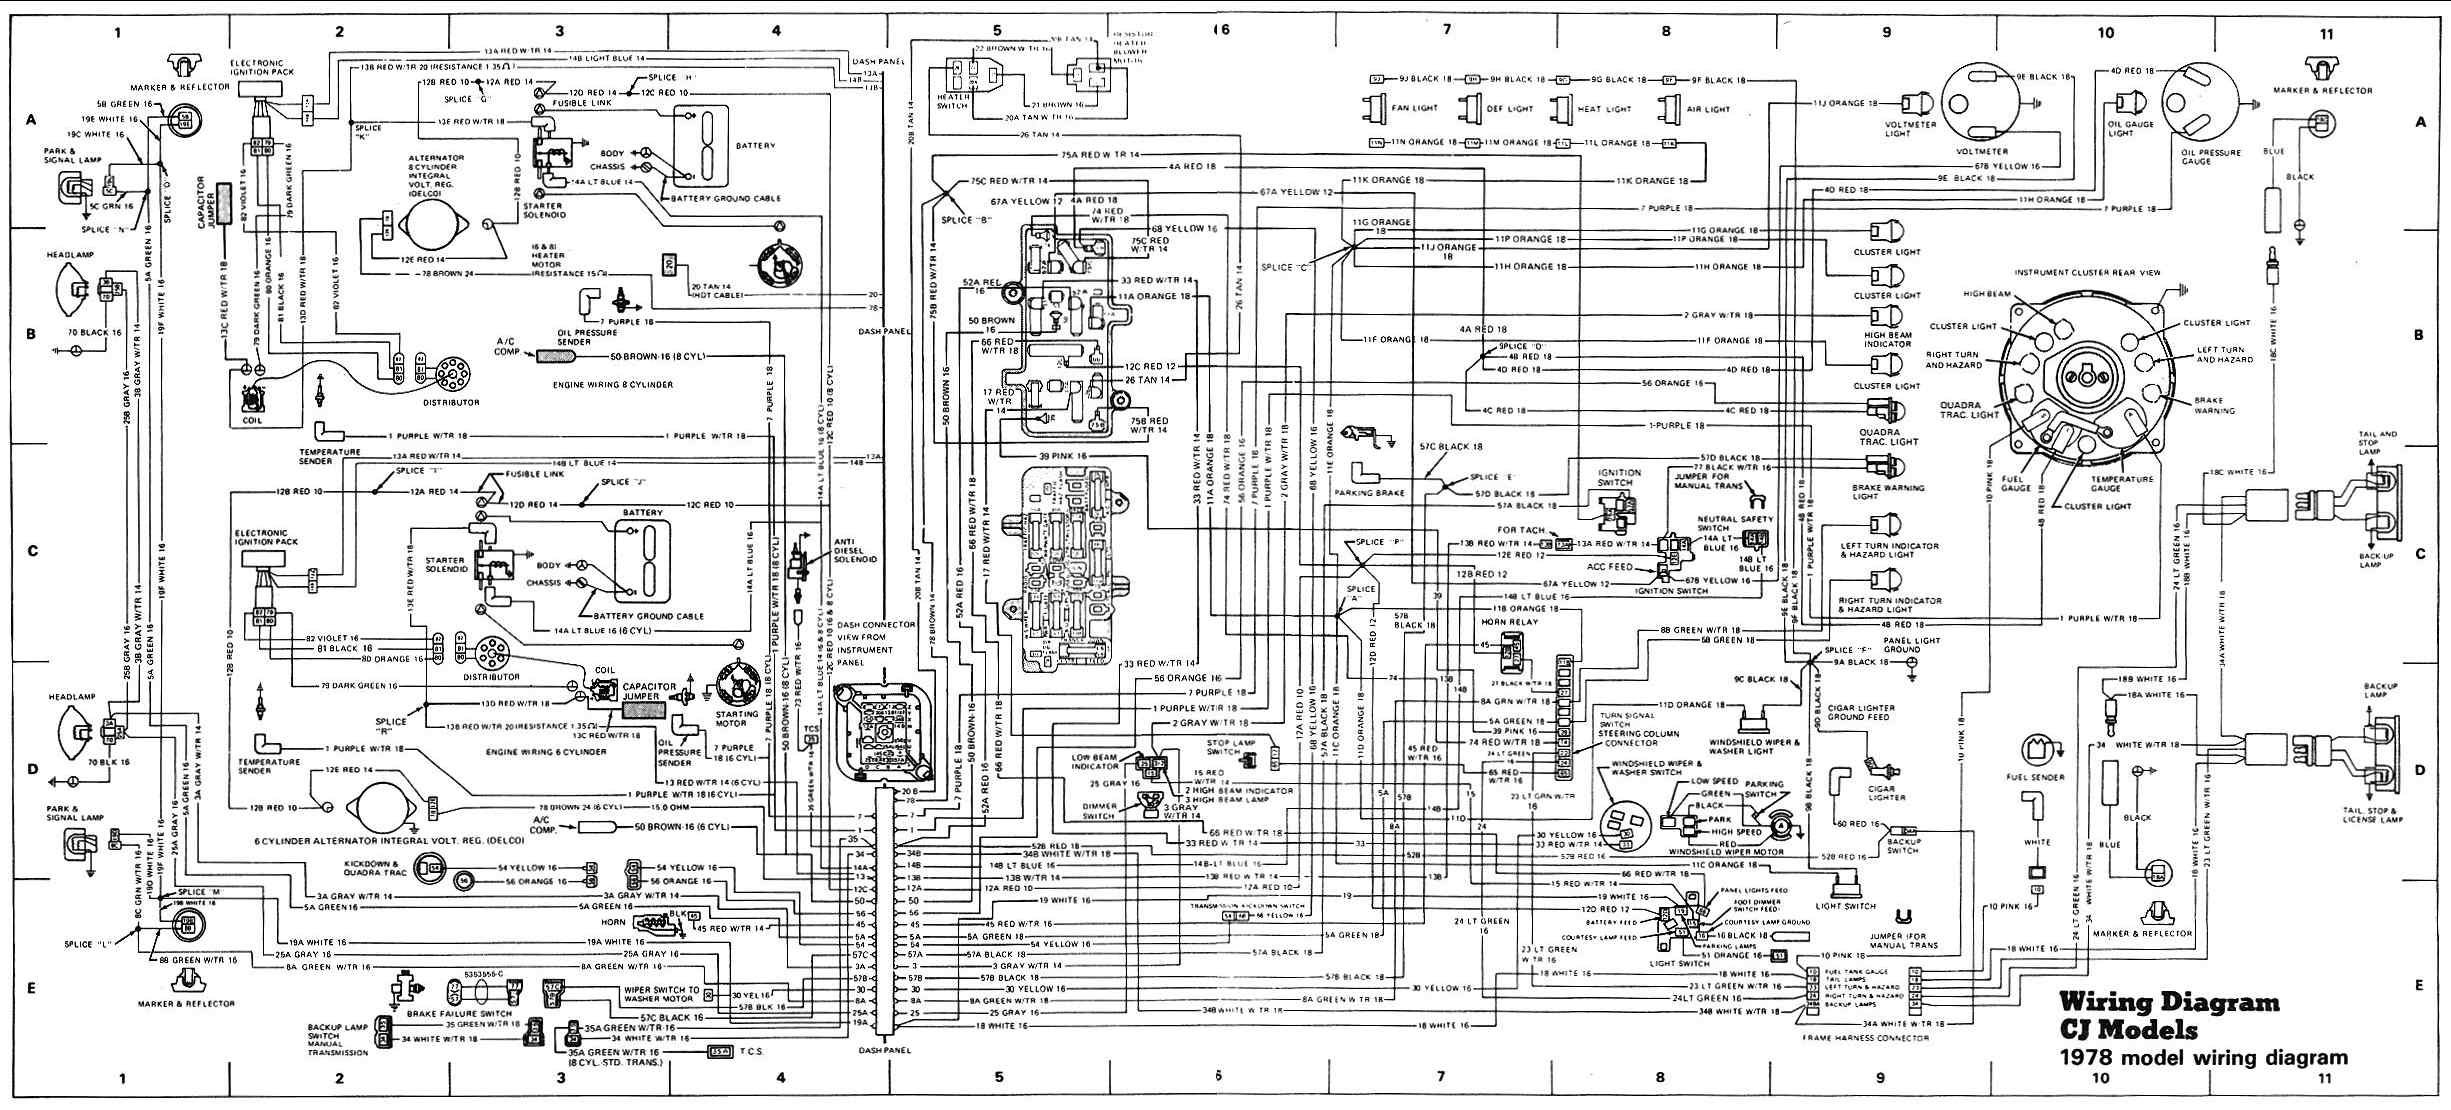 Jeep Wiring Diagram Download Diagrams Mazda Car Manuals Pdf Fault Codes 2005 Wrangler